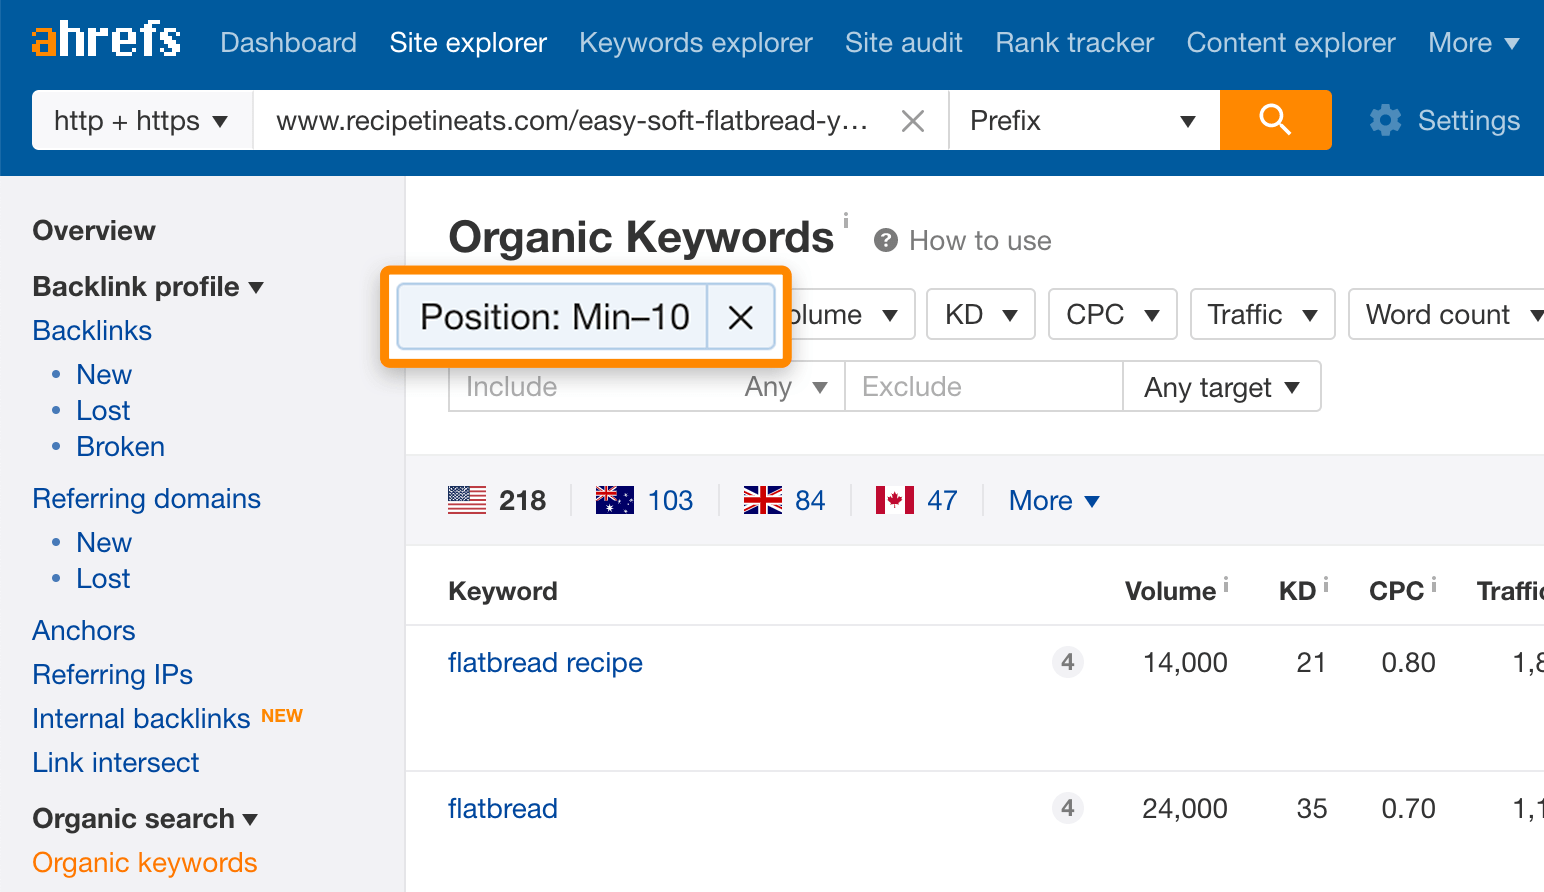 16 organic keywords position 10